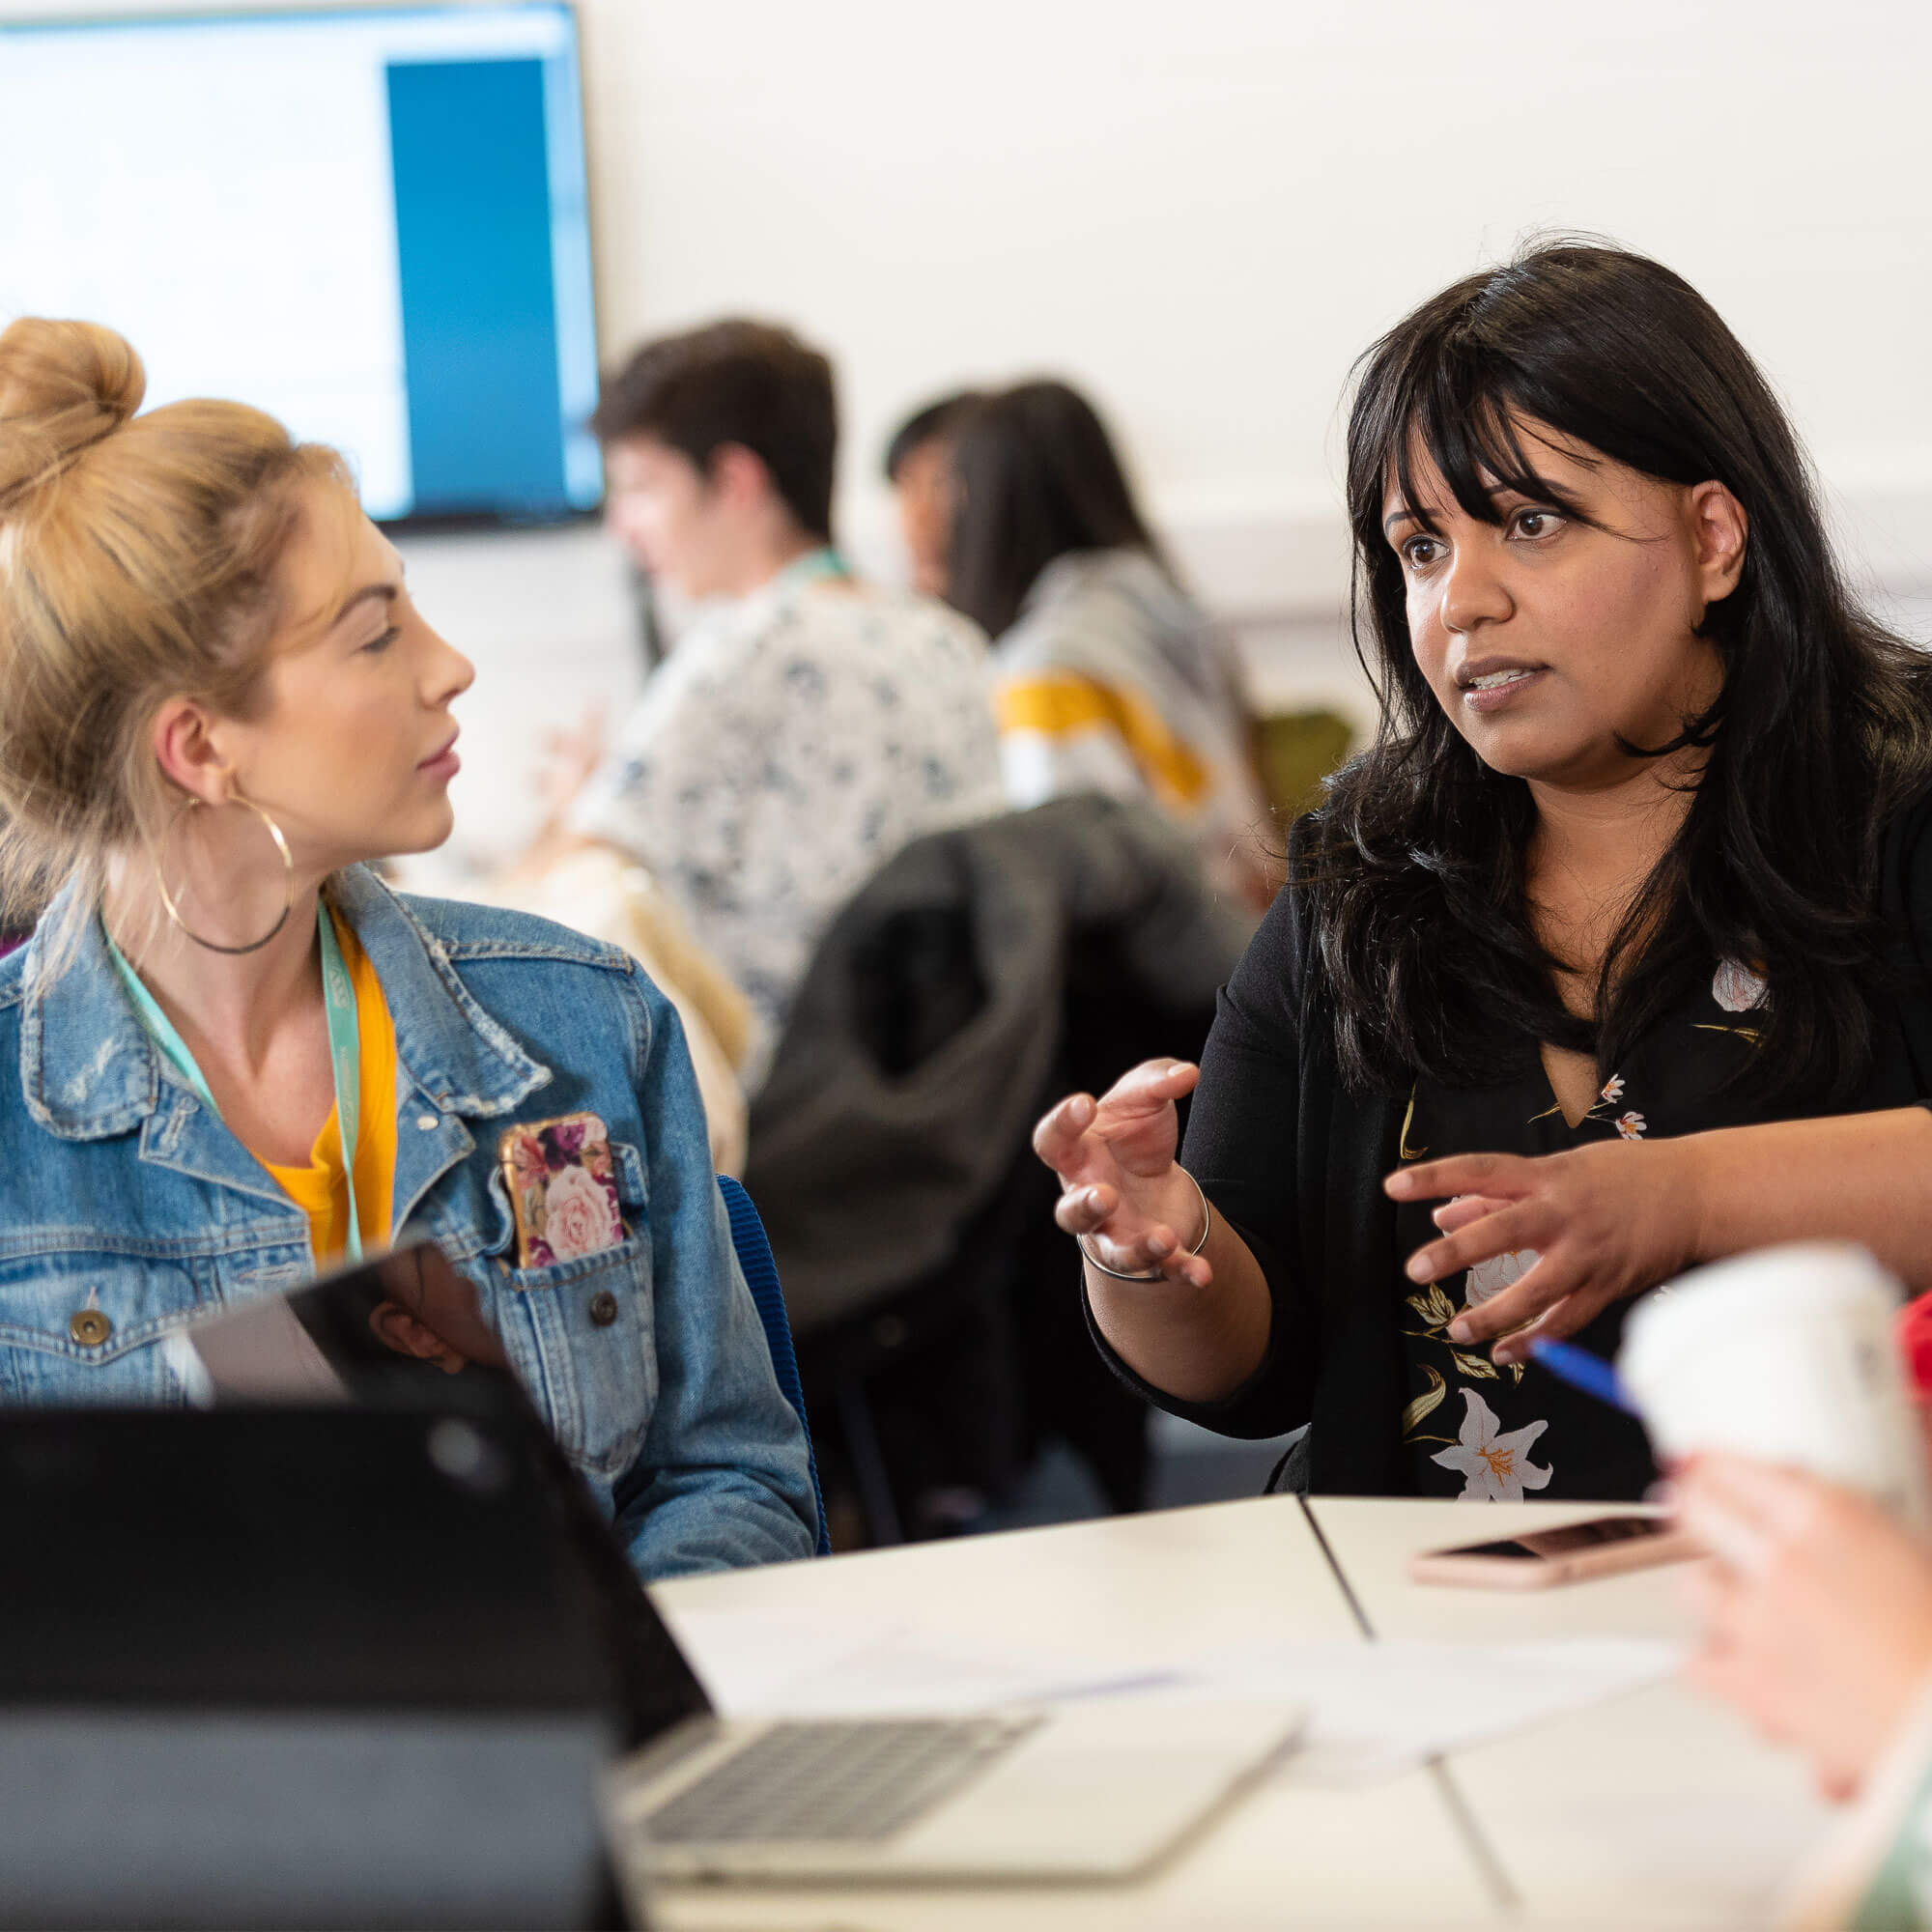 A female academic talking to a female workshop attendee